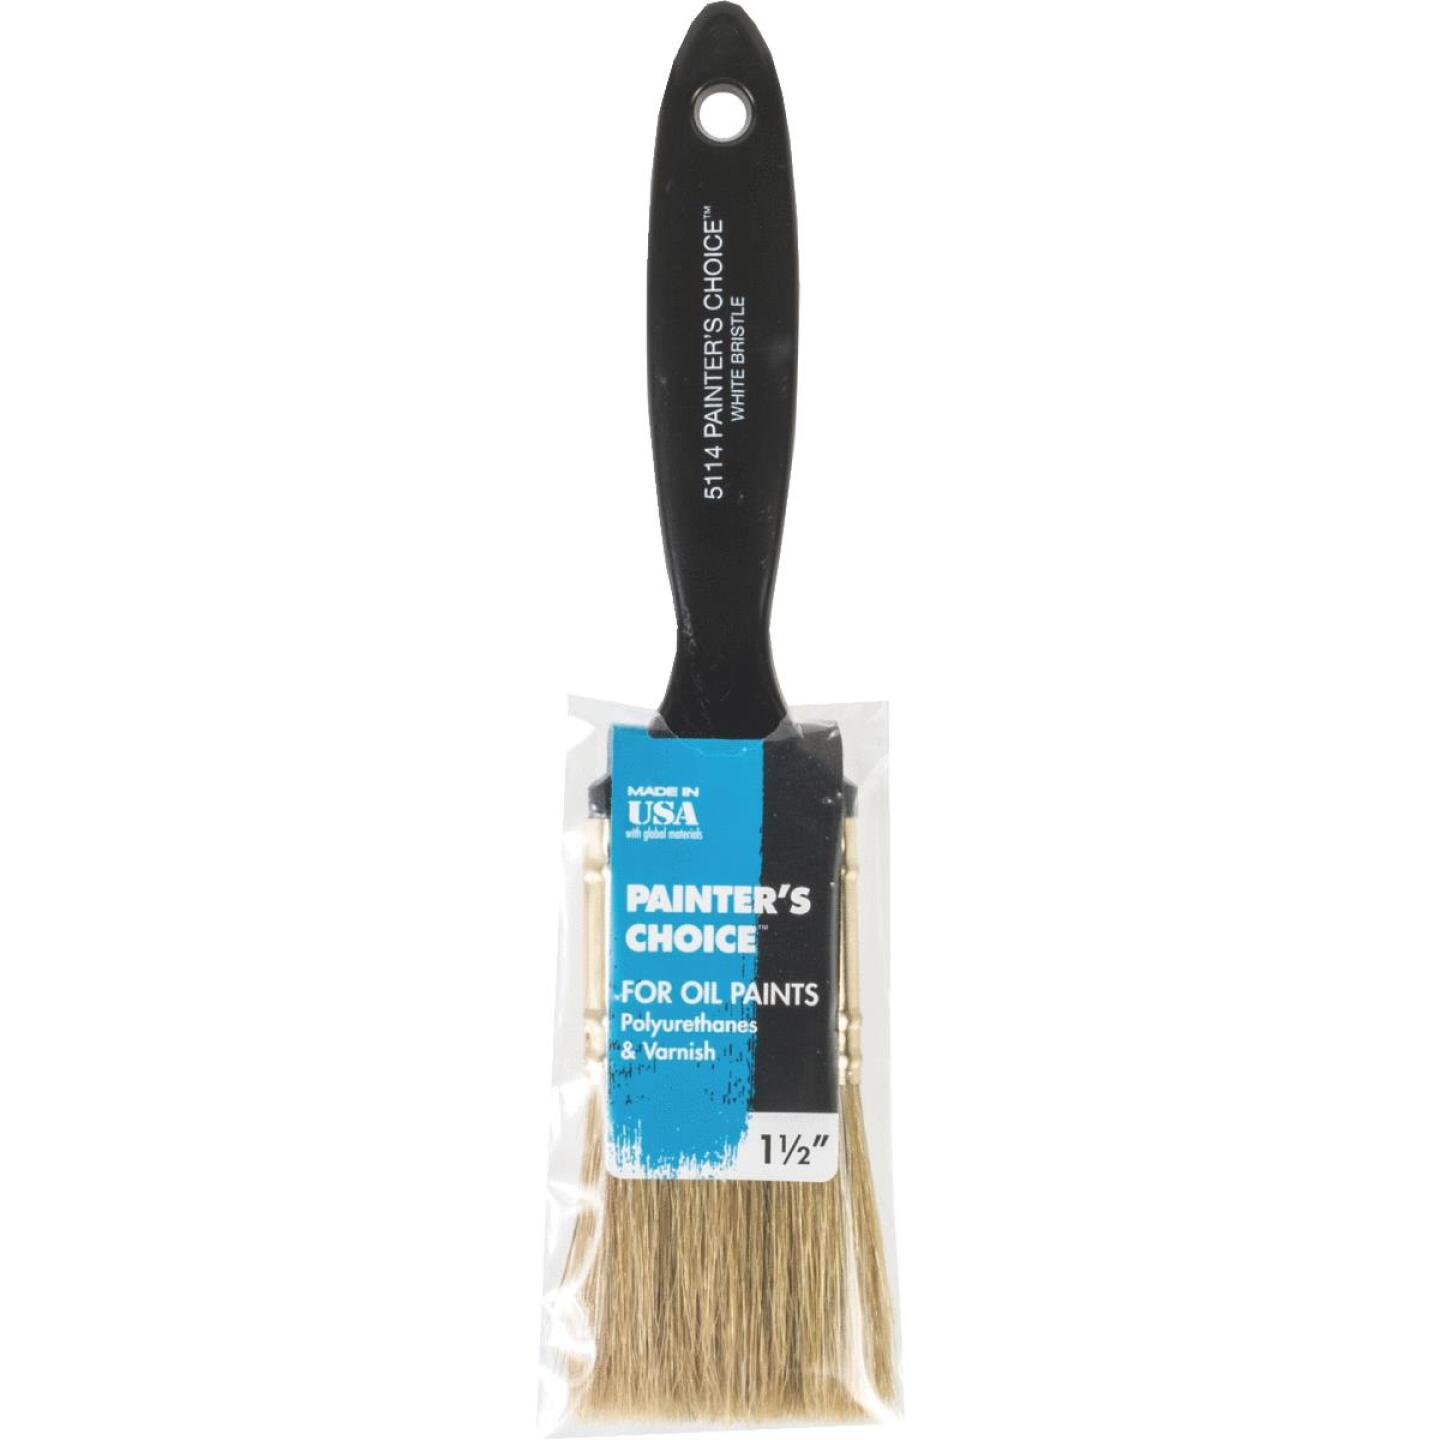 Wooster Painter's Choice 1-1/2 In. White China Bristle Flat Paint Brush Image 1